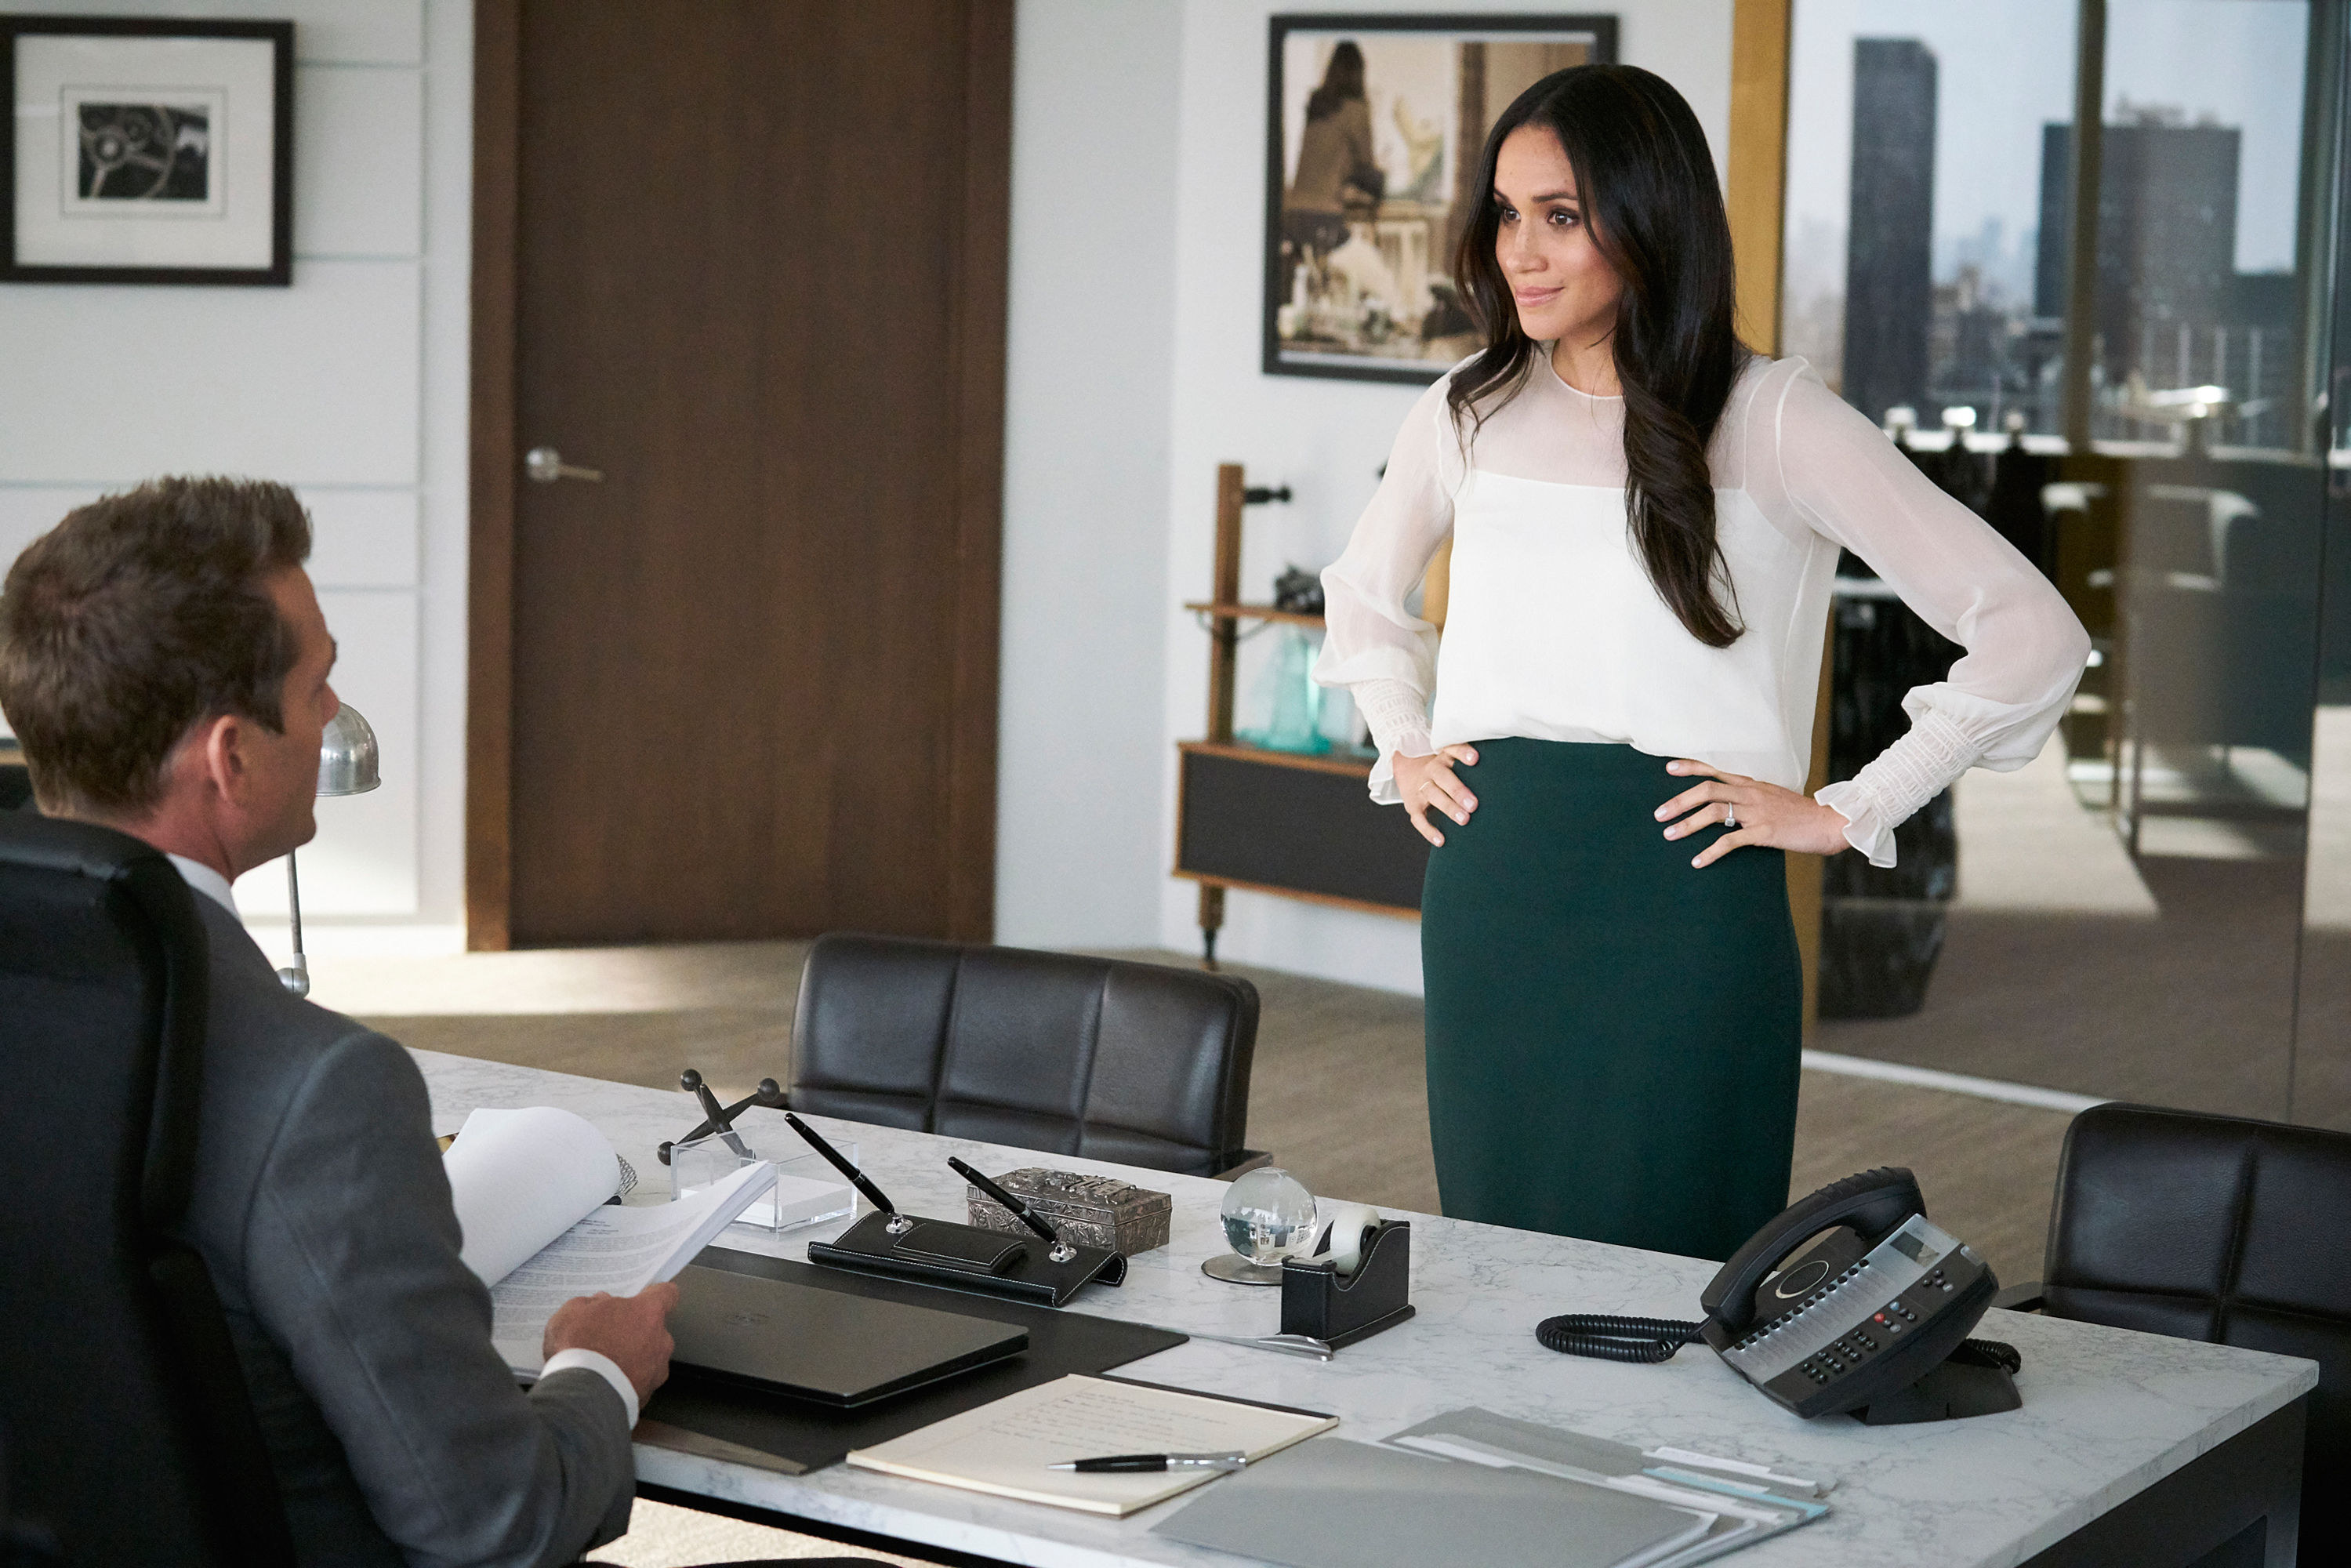 SUITS, Gabriel Macht, Meghan Markle in 'Tiny Violin', (Season 7, Episode 715, aired April 11, 2018